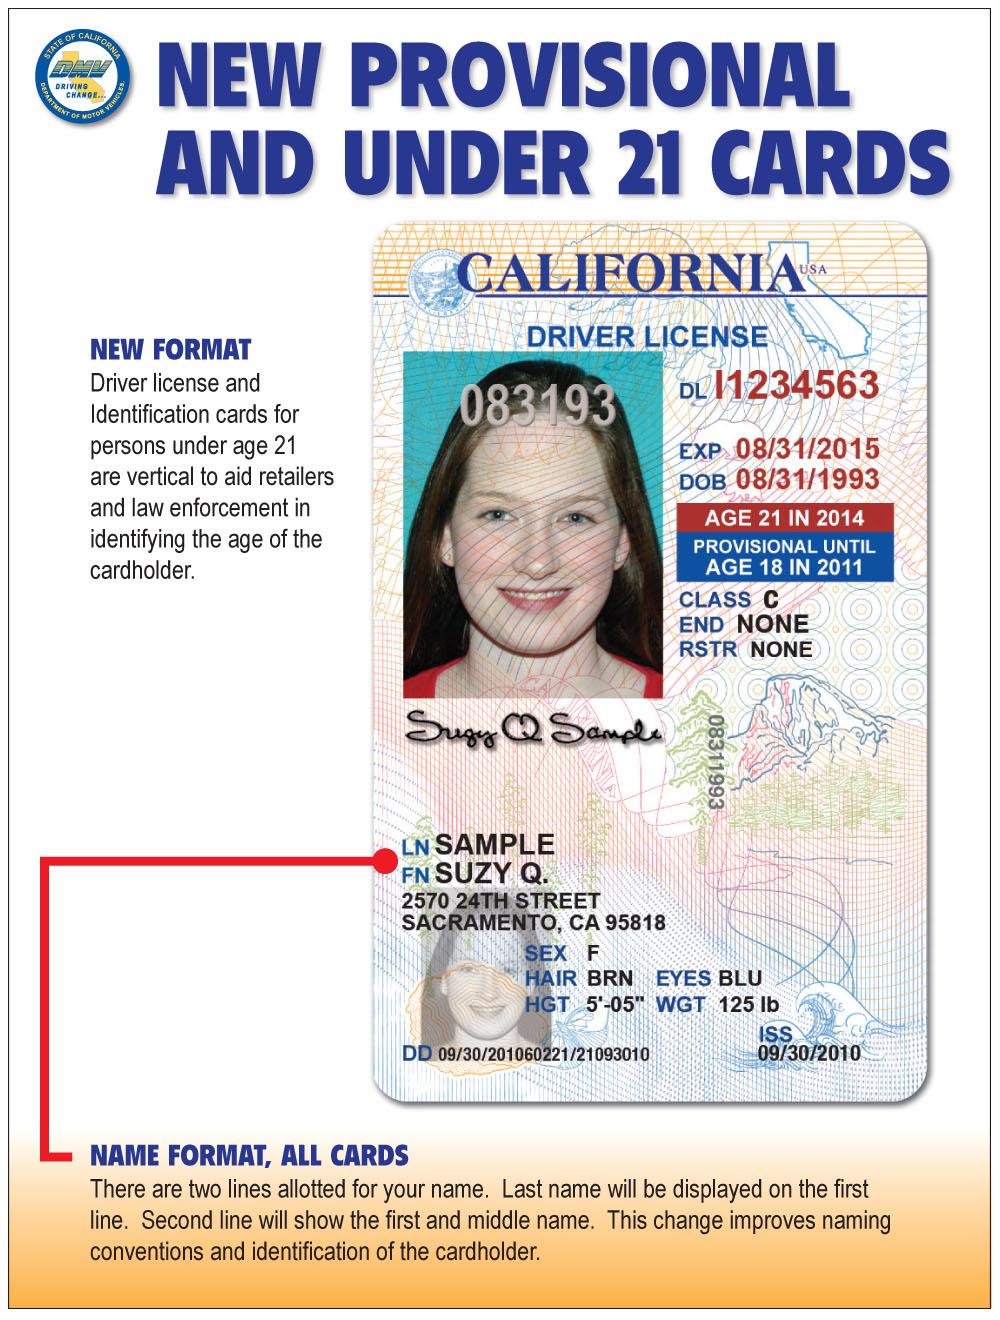 california driver license issue date